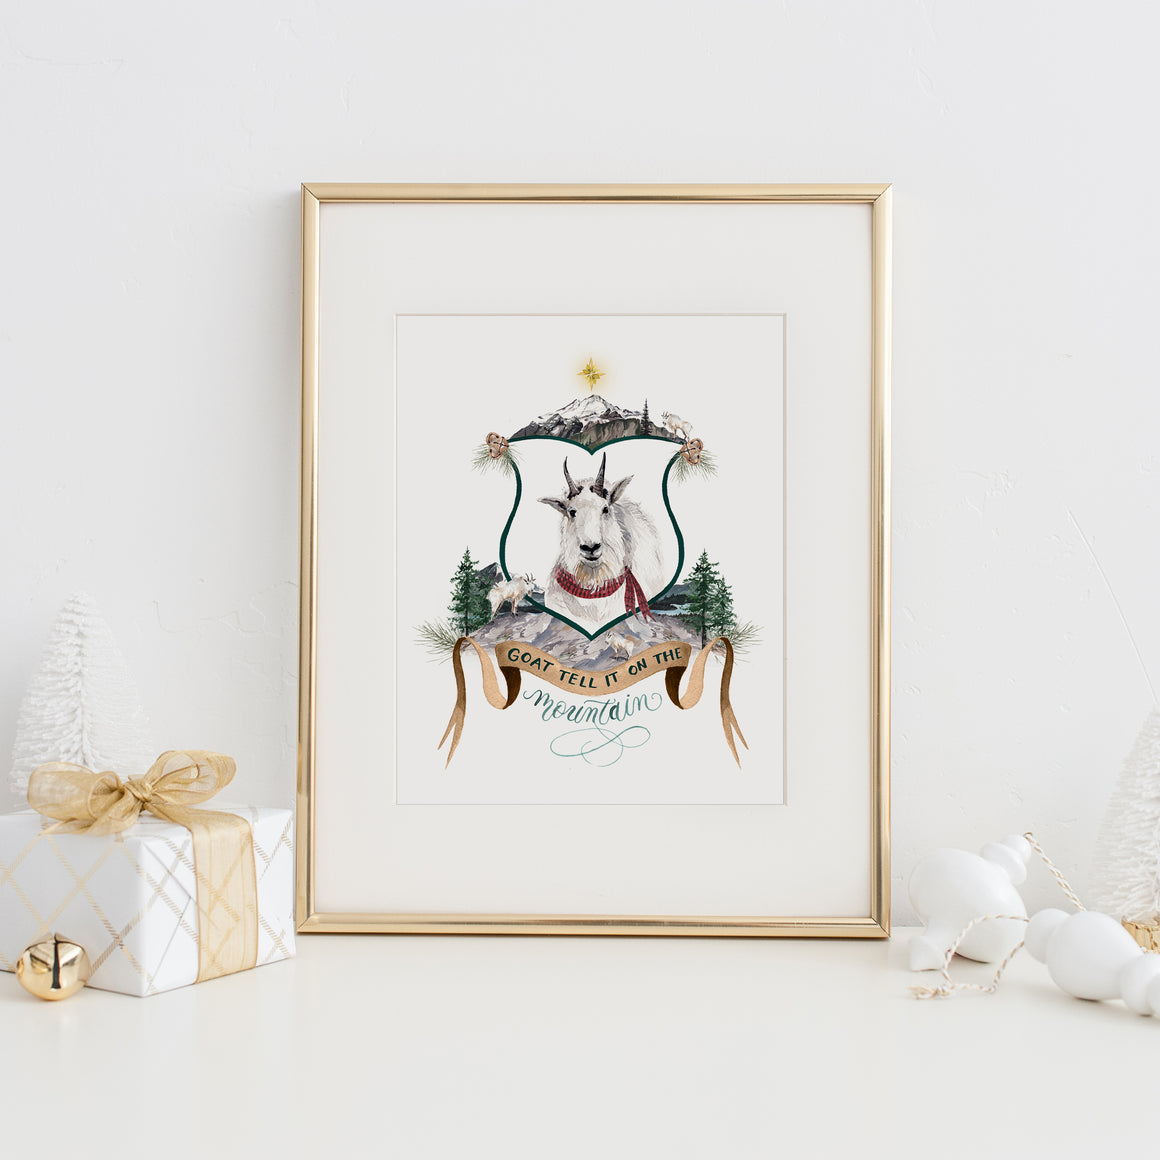 Goat Tell it on the Mountain Art Print